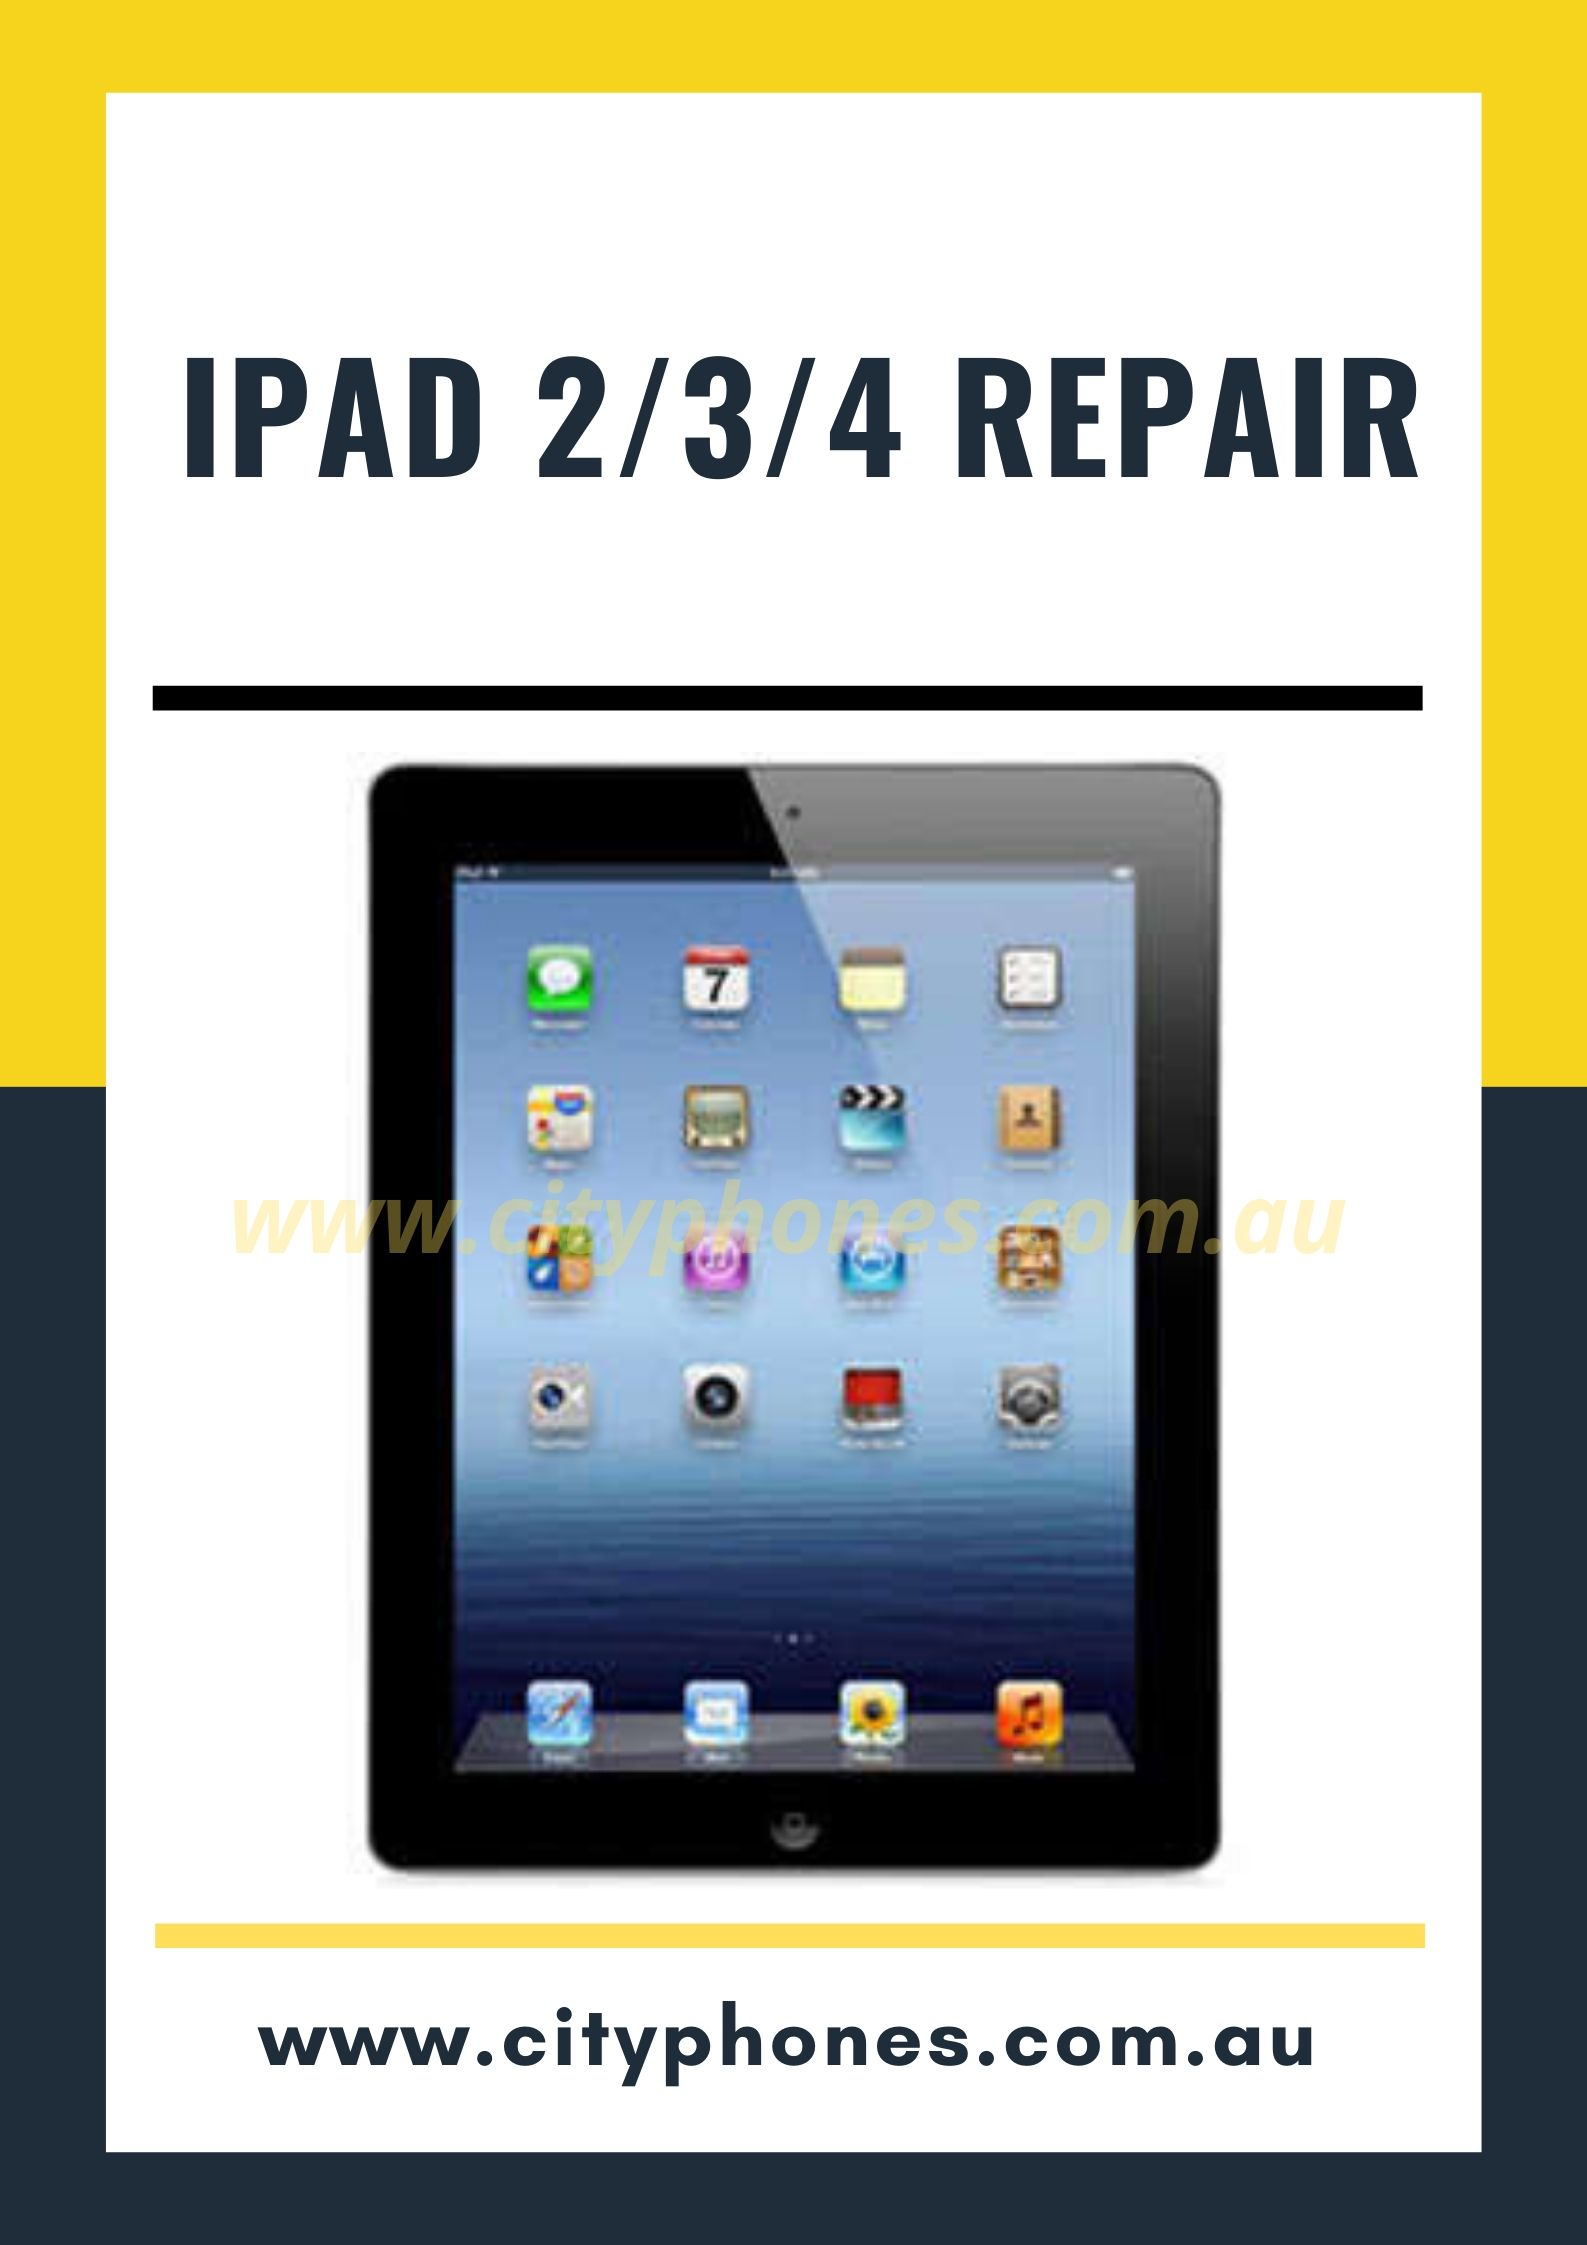 iPad screen repair in melbourne